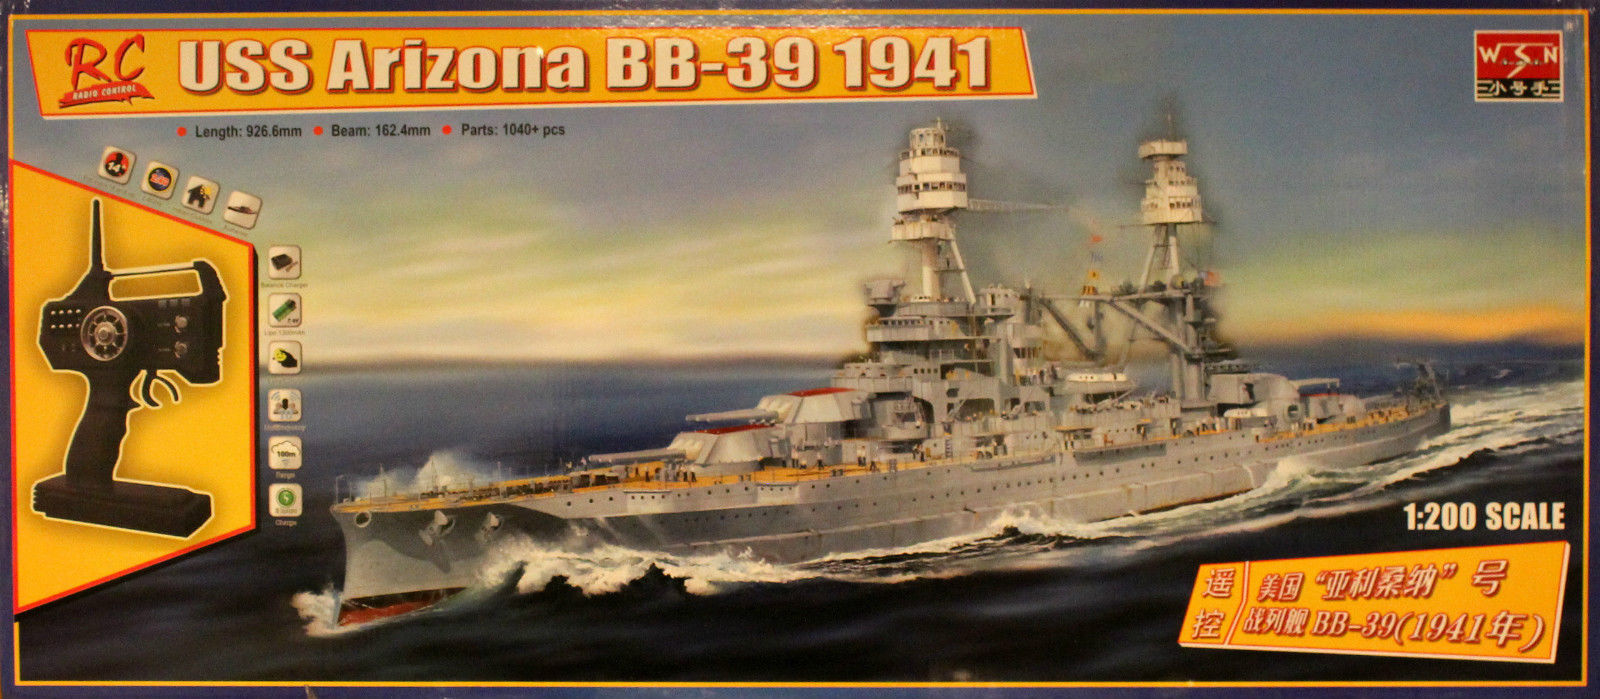 Trumpeter Models 7015 1:200 USS Arizona BB-39 Battleship Kit (1941) This is Trumpeter Models 7015 1:200 USS Arizona BB-39 Battleship Kit (1941). Features includes metal parts - gun barrel, chain, shaft, screw. 4 sheets of photo-etched parts 34 sprues of injection-molded plastic parts plus upper hull, lower hull and deck. Deck pattern finely rendered. Full Radio-Controlled version of the USS Arizona, including: Working mechanical turrets, gun fire sounds, smoke, lights and sound. Includes all electronics, battery, charger and 13-channel transmitter.Condition: Factory NewOperational Status: FunctionalThis item is brand new from the factory.Original Box: YesManufacturer: Trumpeter ModelsModel Number: 7015MSRP: $900.00Category 1: 1:100 (and higher scales)Category 2: MilitaryAvailability: Ships in 1 Business Day!The Trainz SKU for this item is P12148285. Track: 12148285 - No Location Assigned - 001 - TrainzAuctionGroup00UNK - TDIDUNK